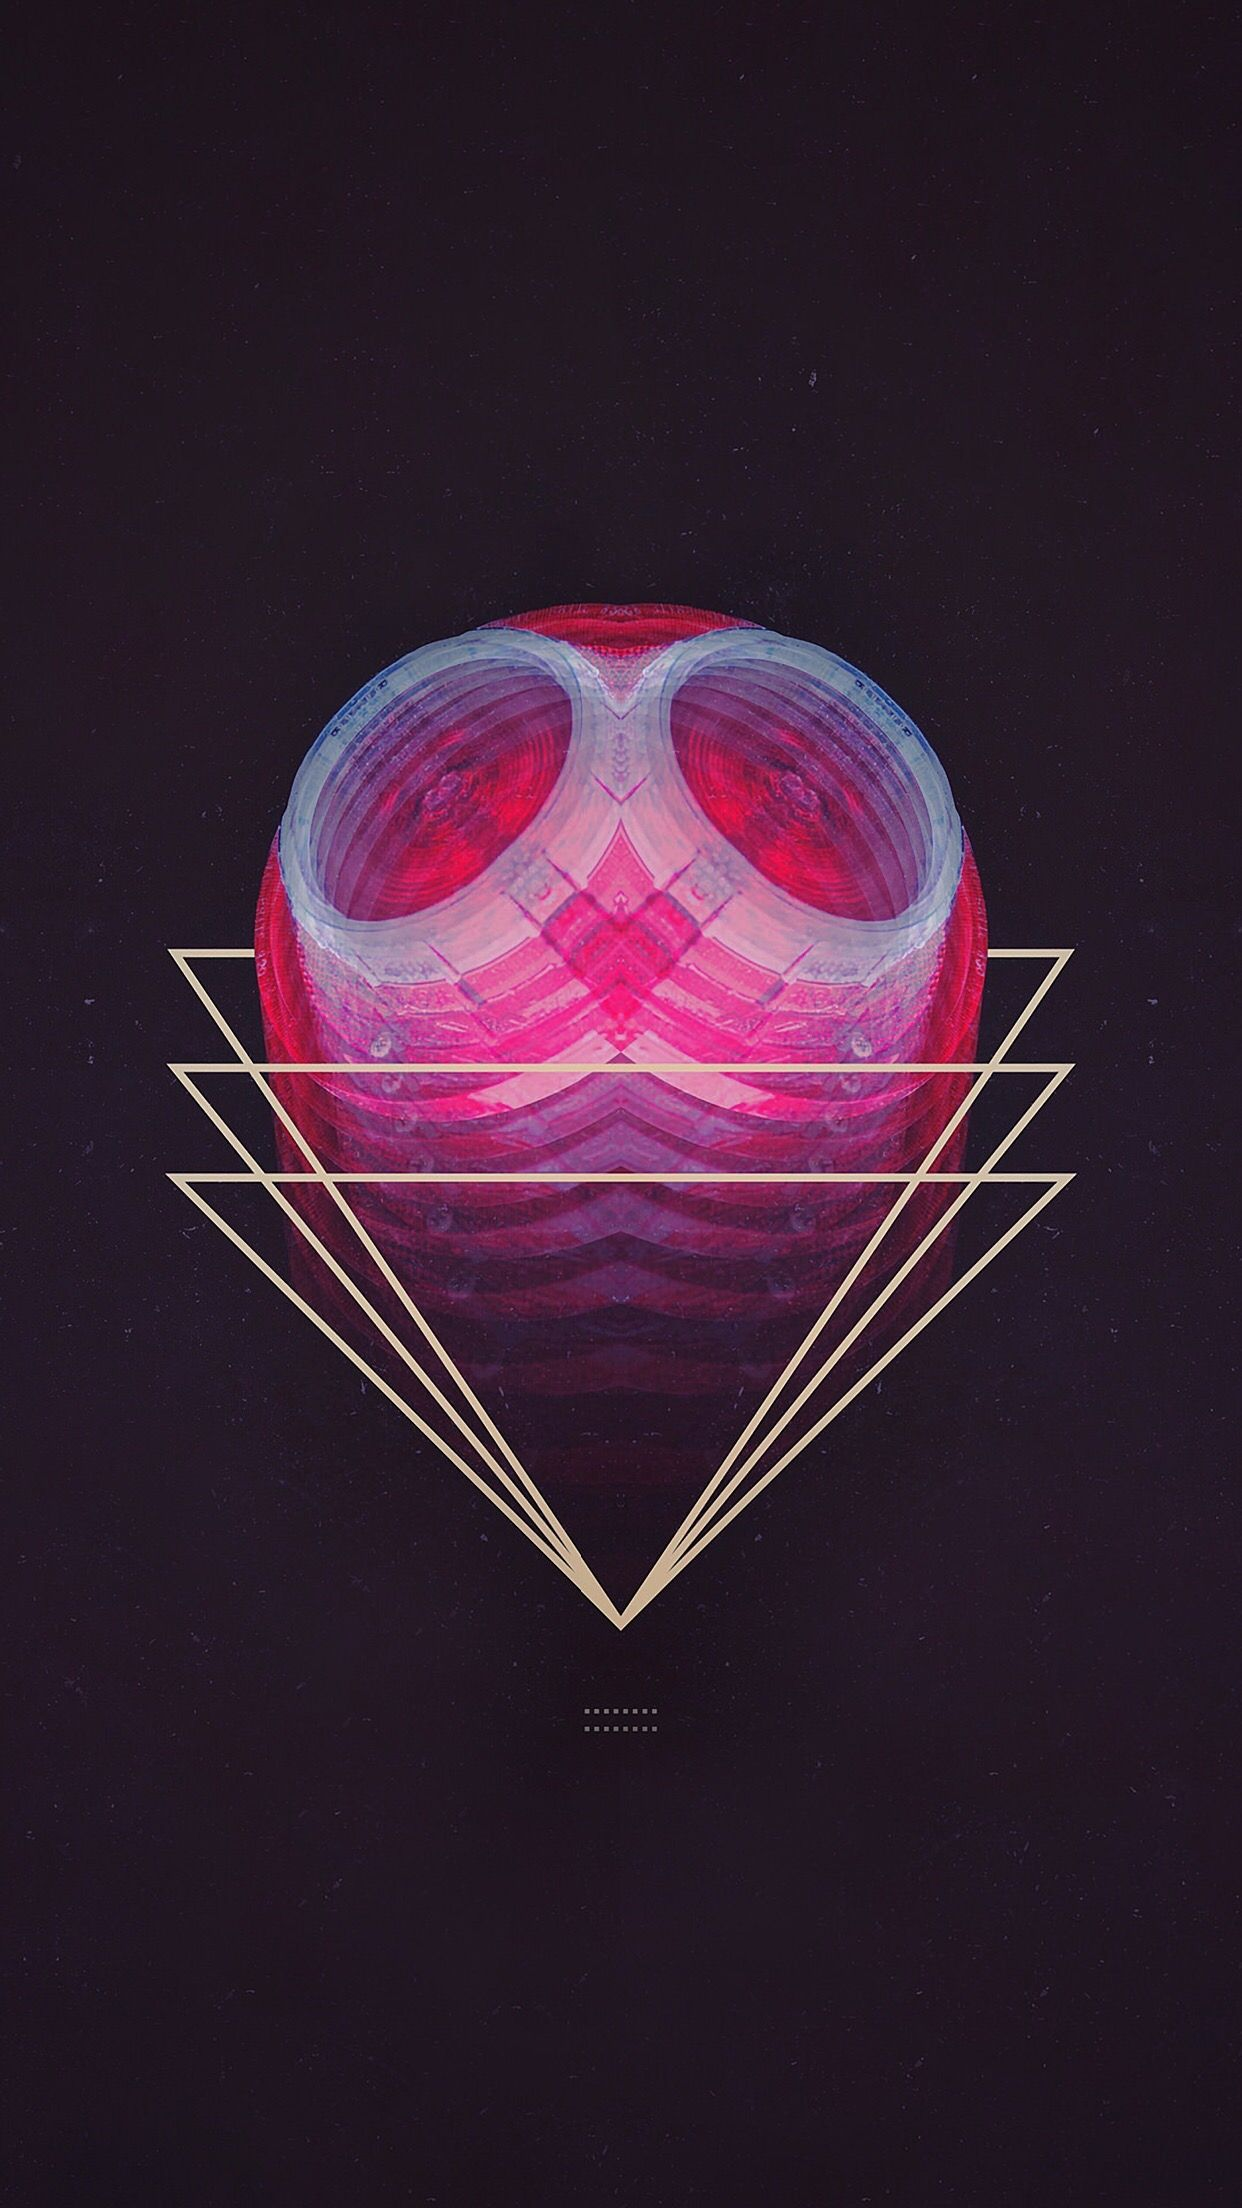 Pin by MAZme Z on iPhone Wallpapers. Album covers